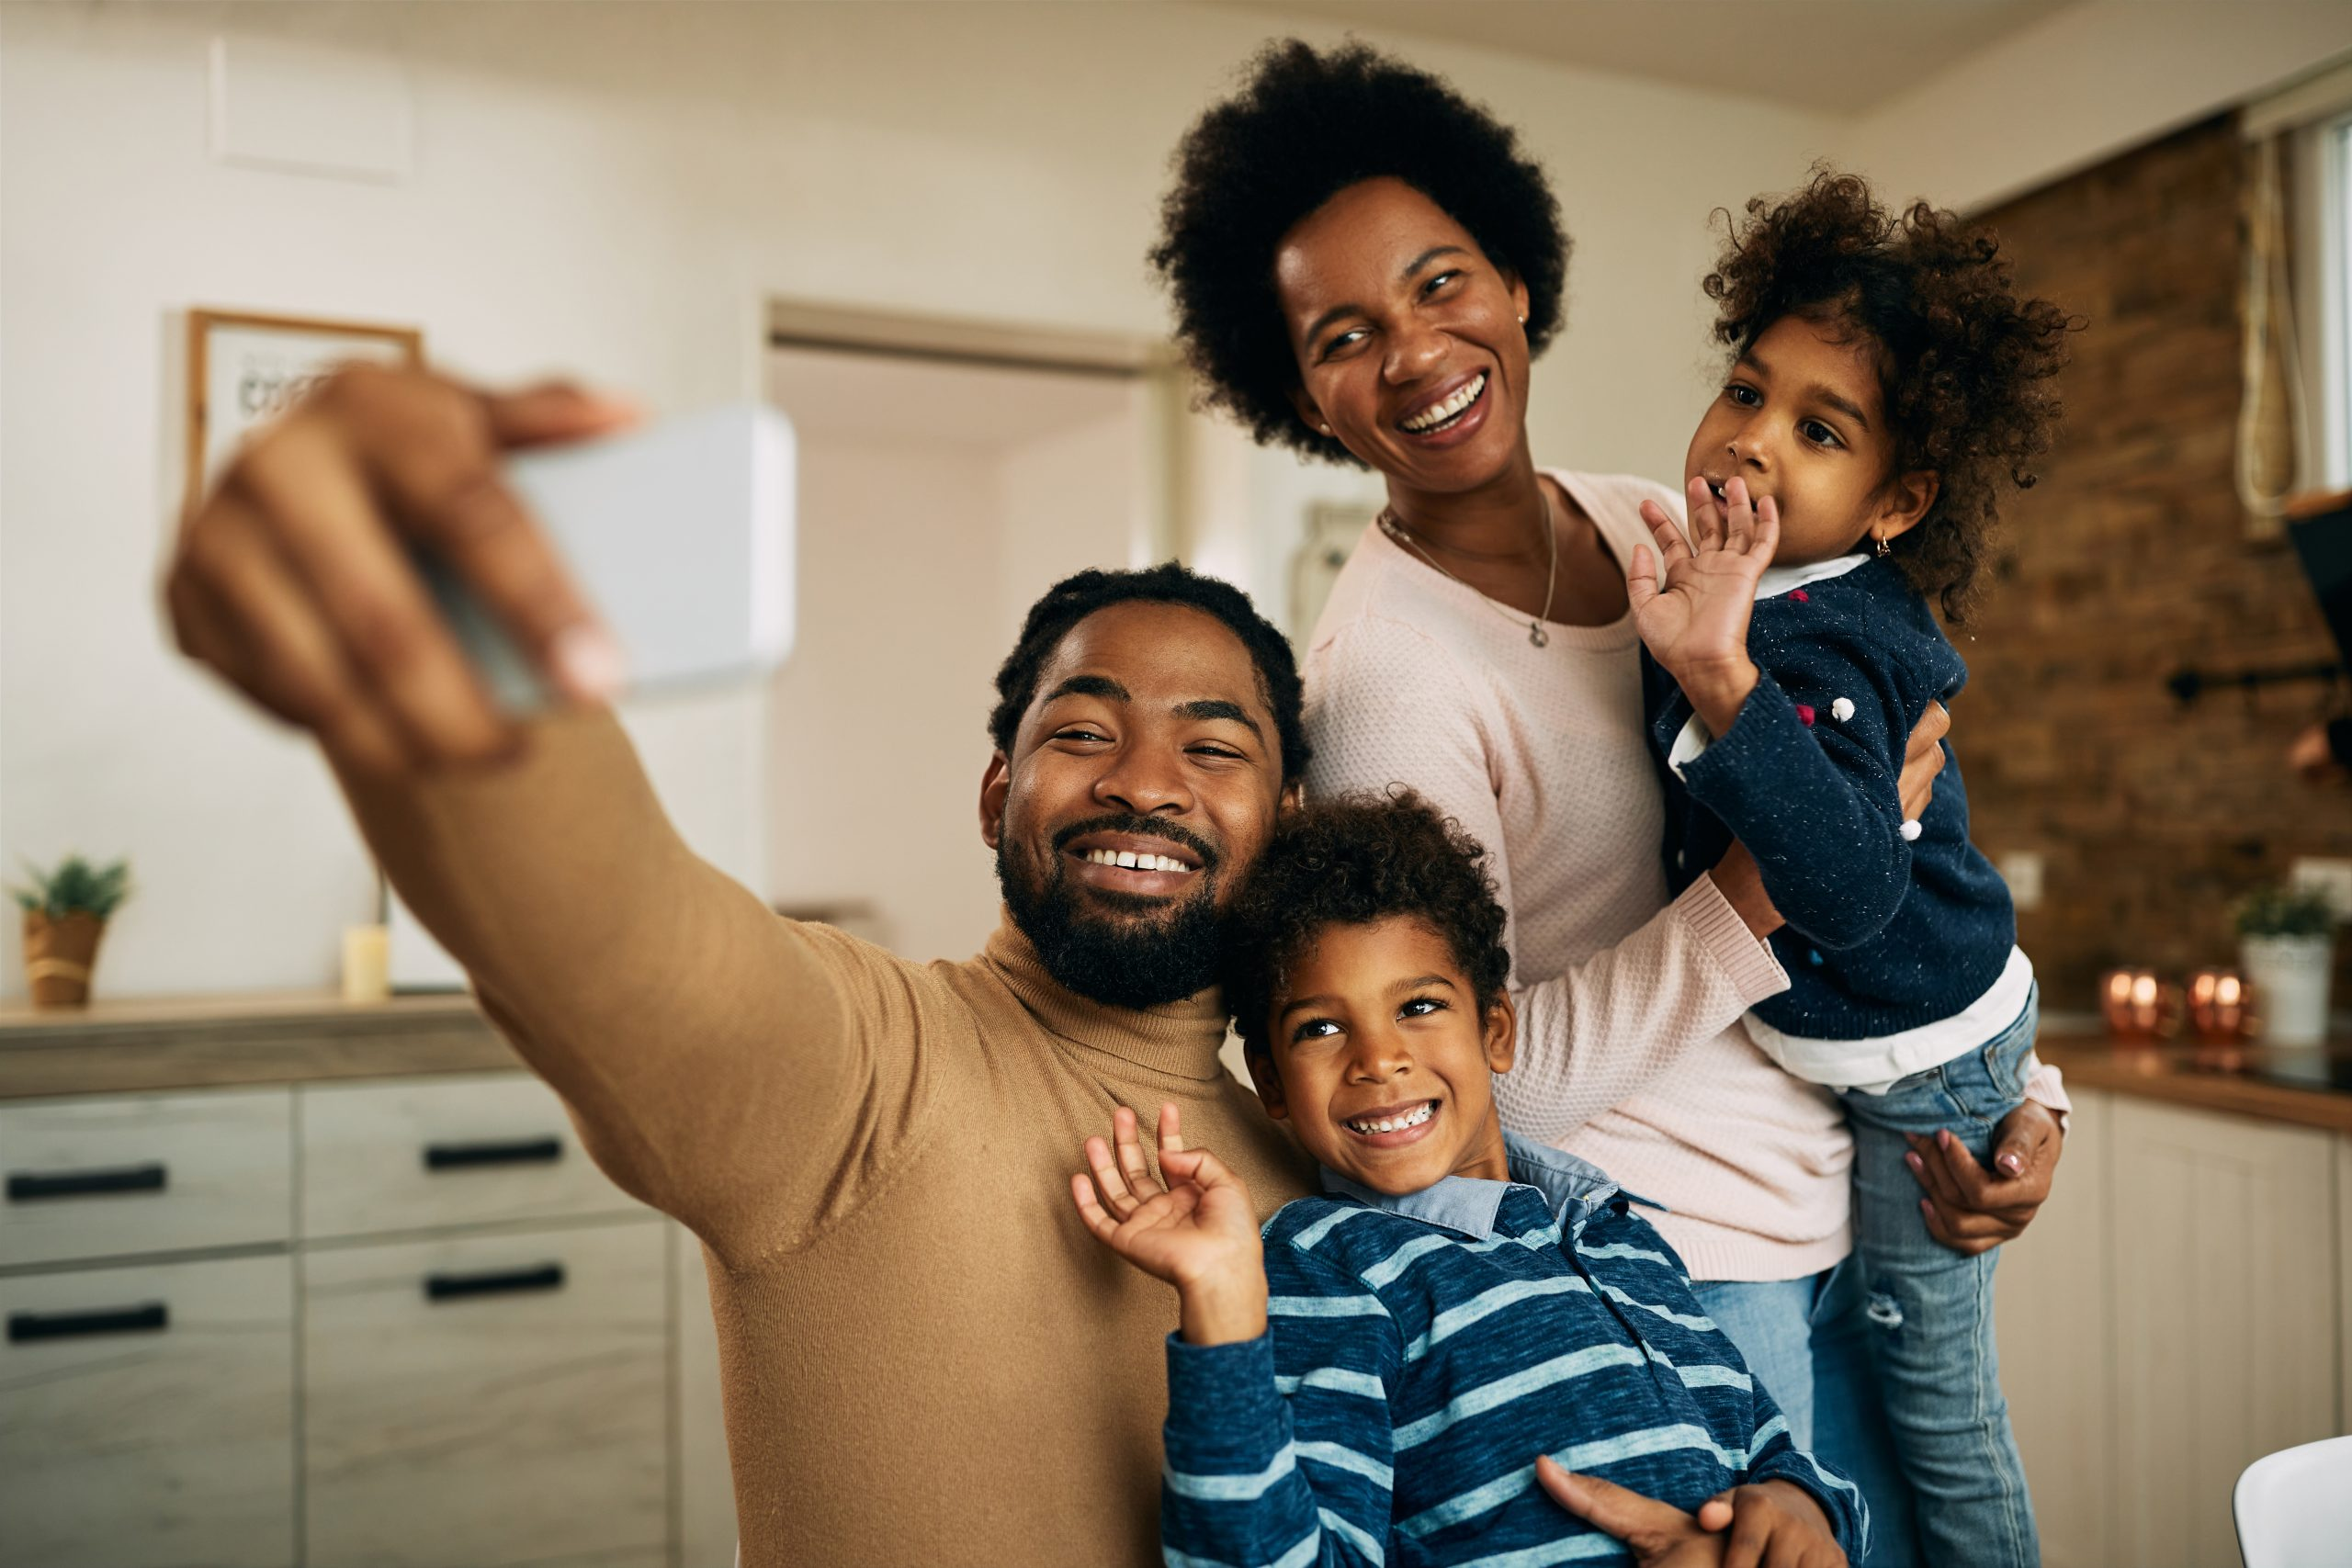 Bringing Fathers Into Focus for Child & Family Well-Being